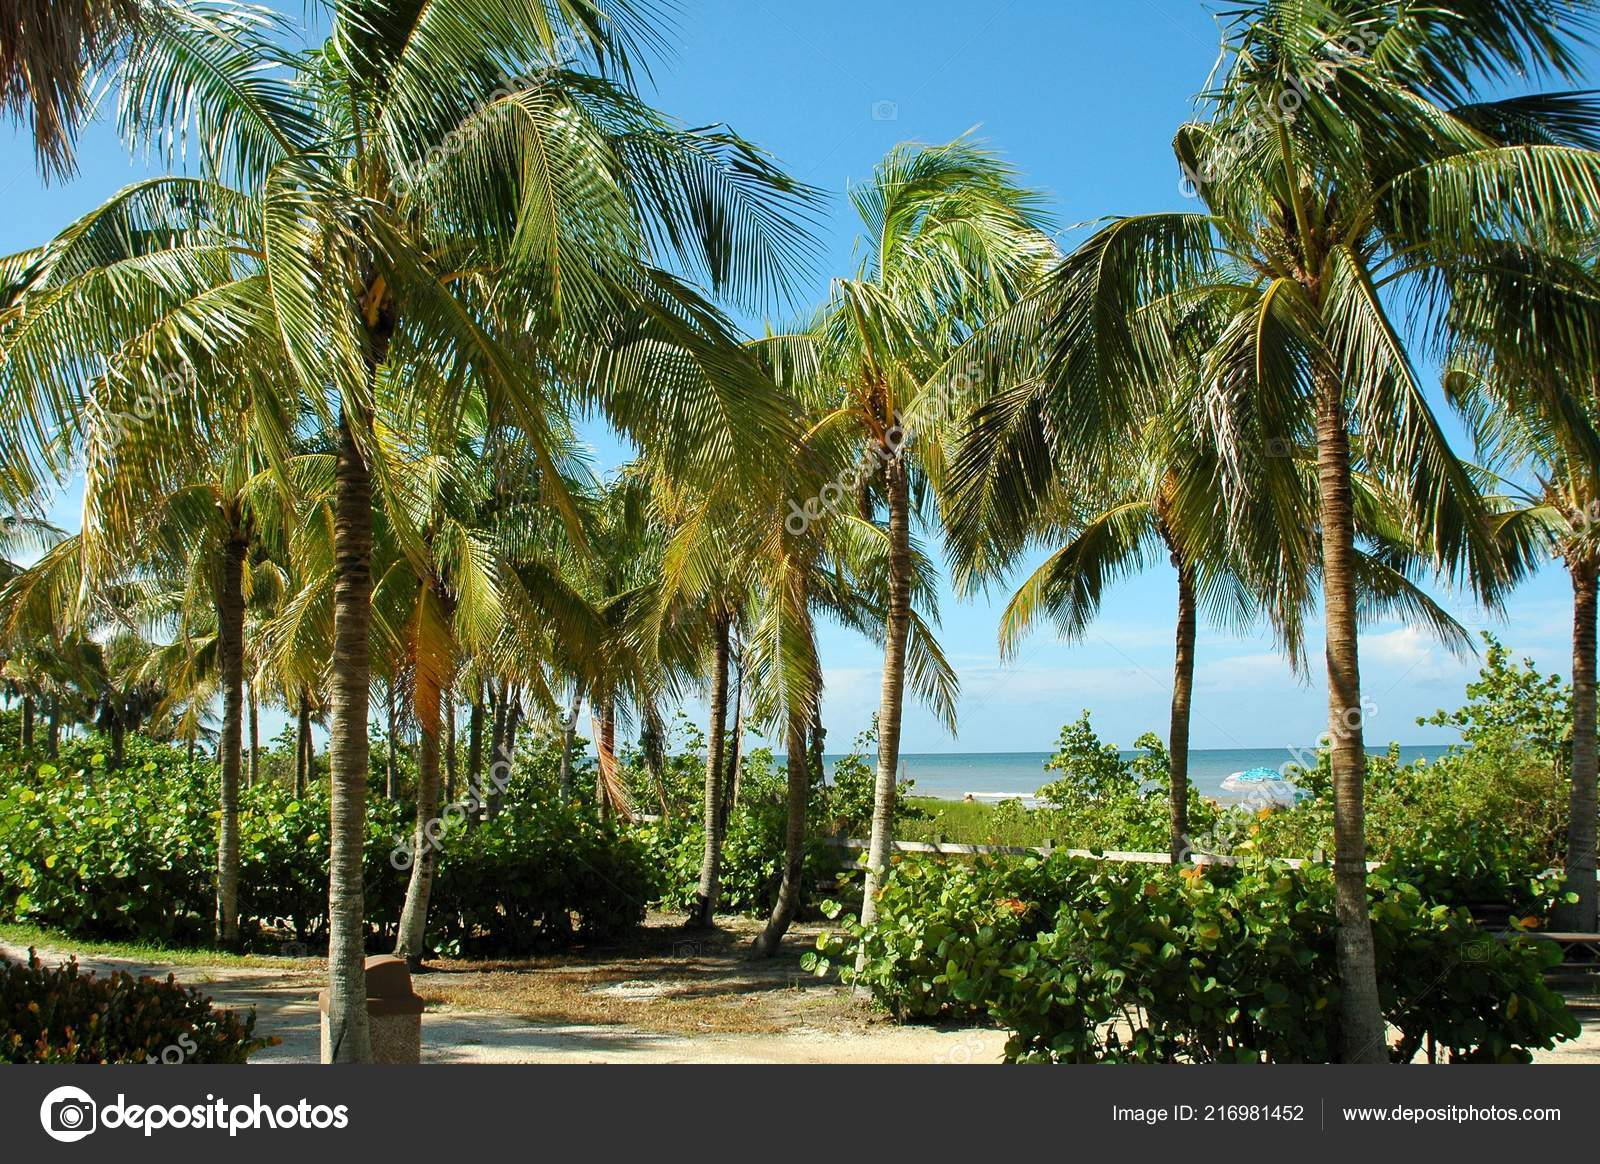 Pictures Palm Trees Landscaping Beautiful Tropical Palm Trees Landscape Background Florida Usa Stock Photo C Howdy76 216981452